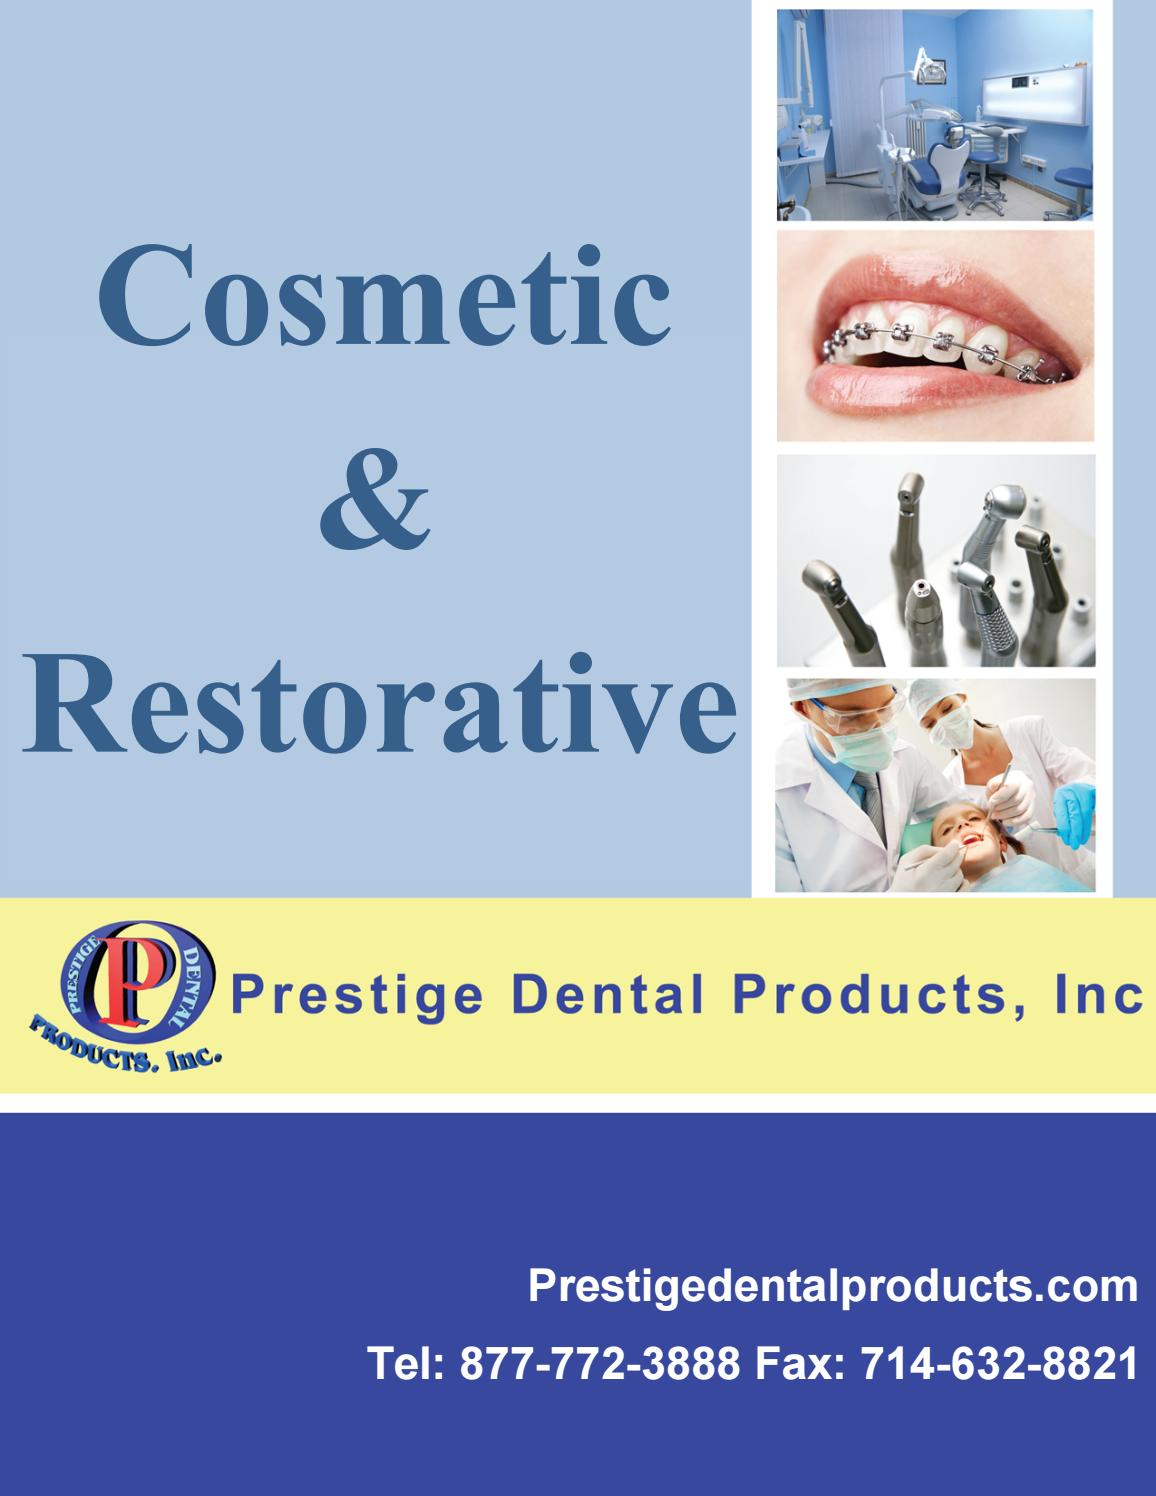 Dental Cosmetic Restorative Catalog By Prestigedental0 Issuu 110502 The Problems And Potential Of Portable Power